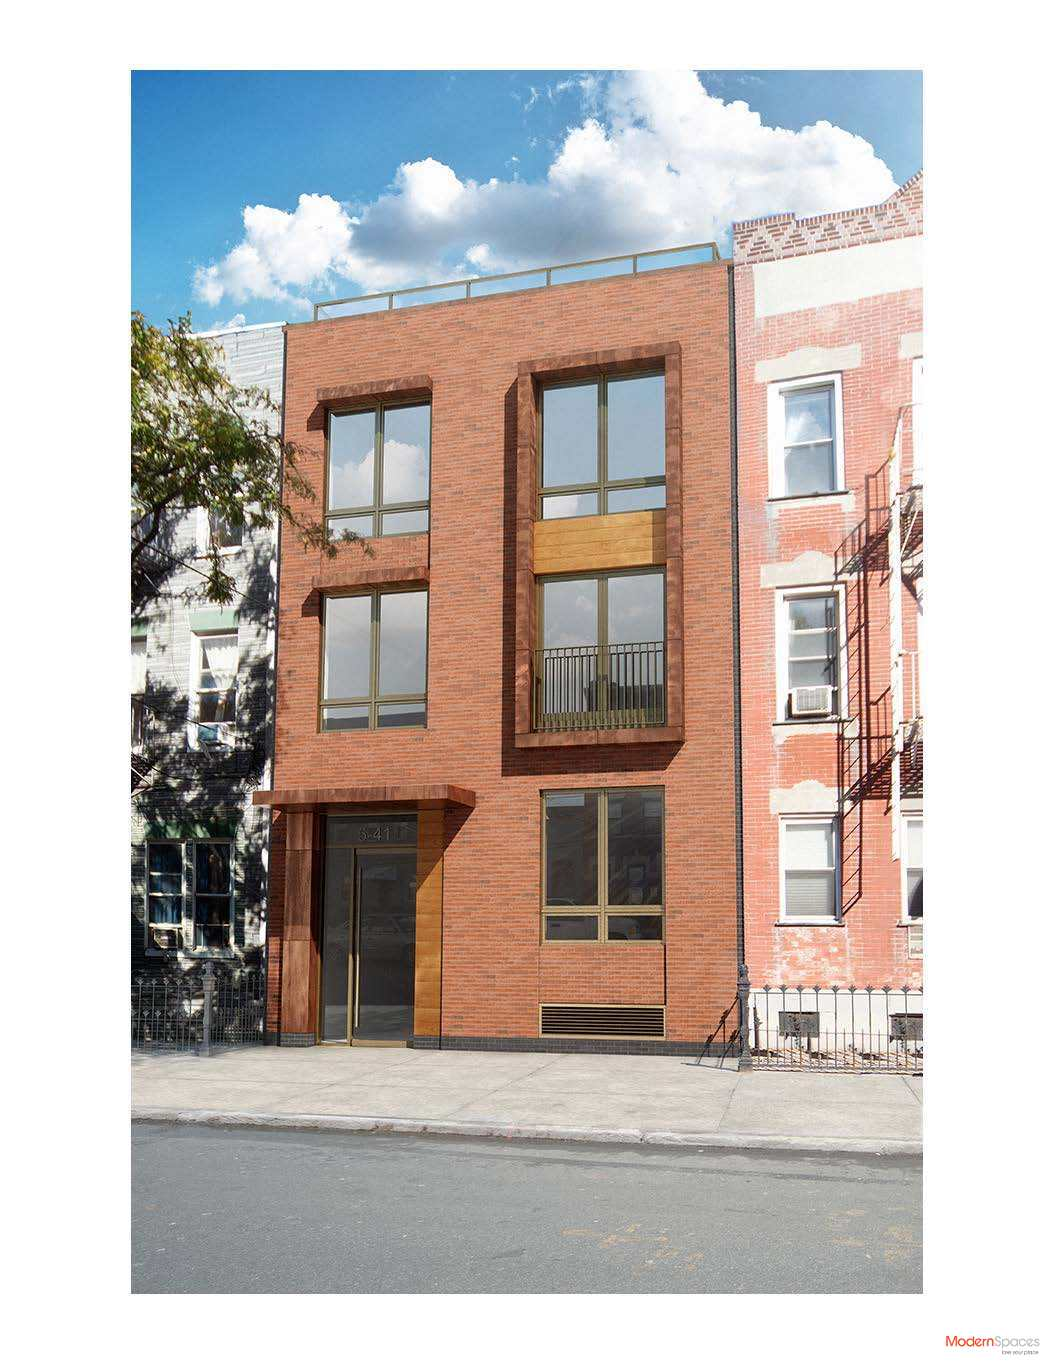 Apartment / Flat / Unit | 5-41 47th Road #2B, New York, NY 3